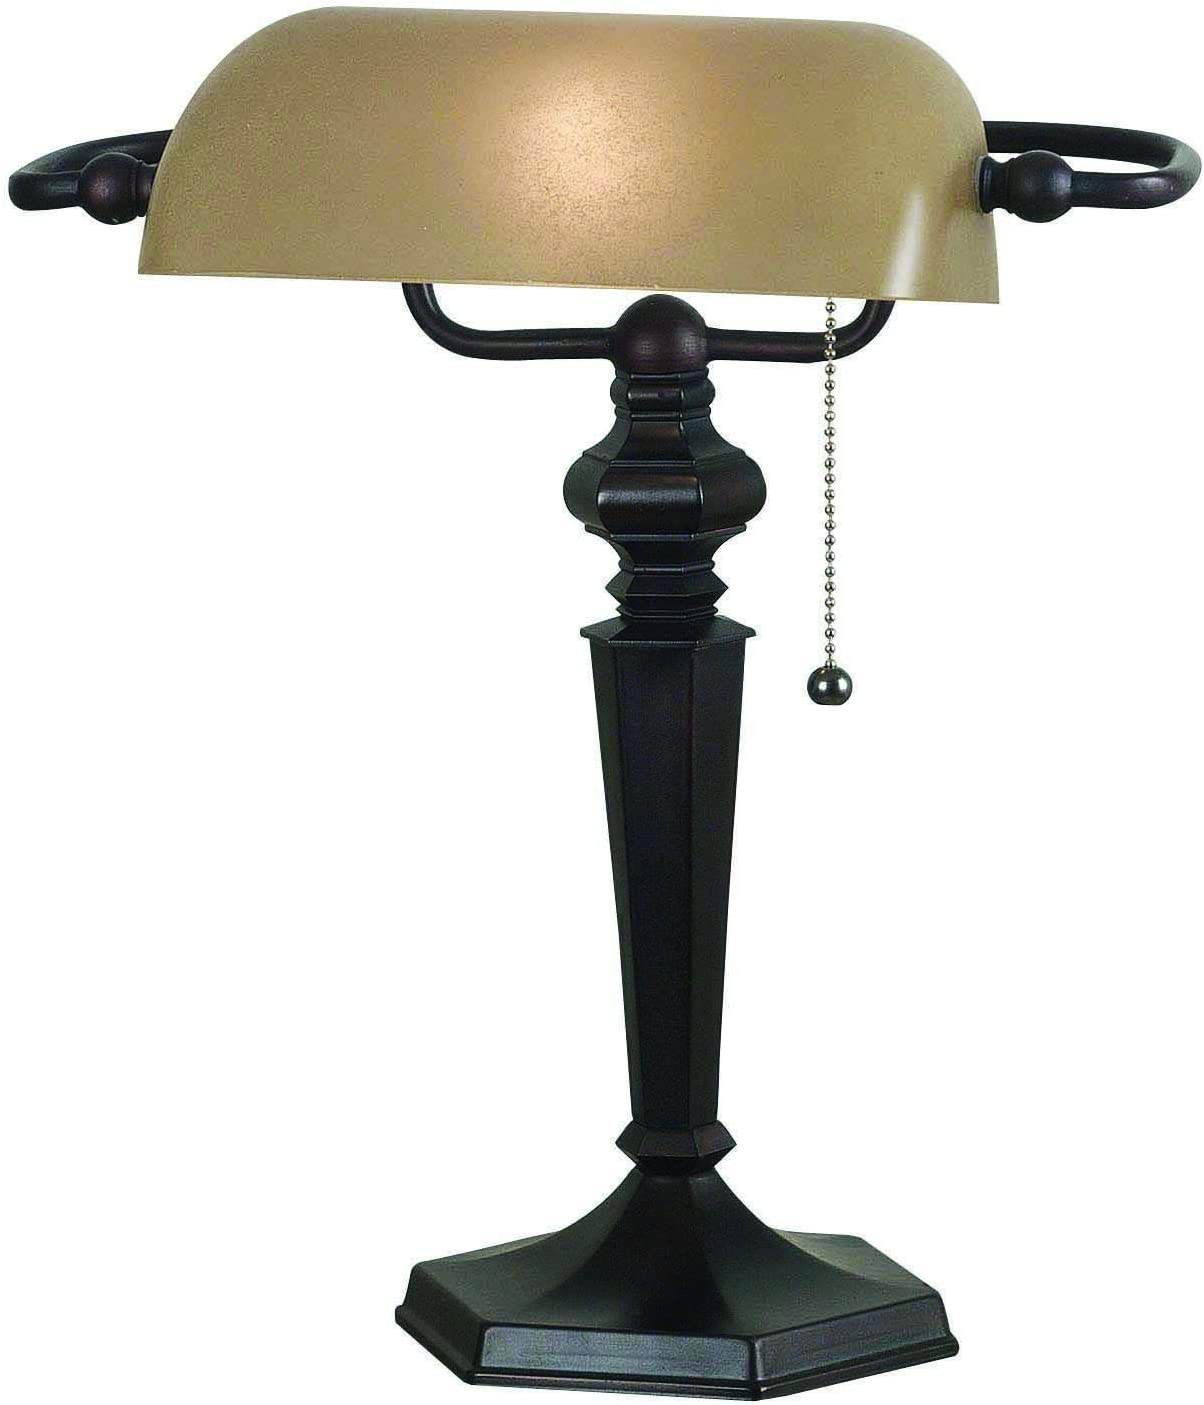 Kenroy Home Classic Banker Lamp, 15.5 Inch Height, 13 Inch Width, 10.5 Inch Ext. with Oil Rubbed Bronze Finish